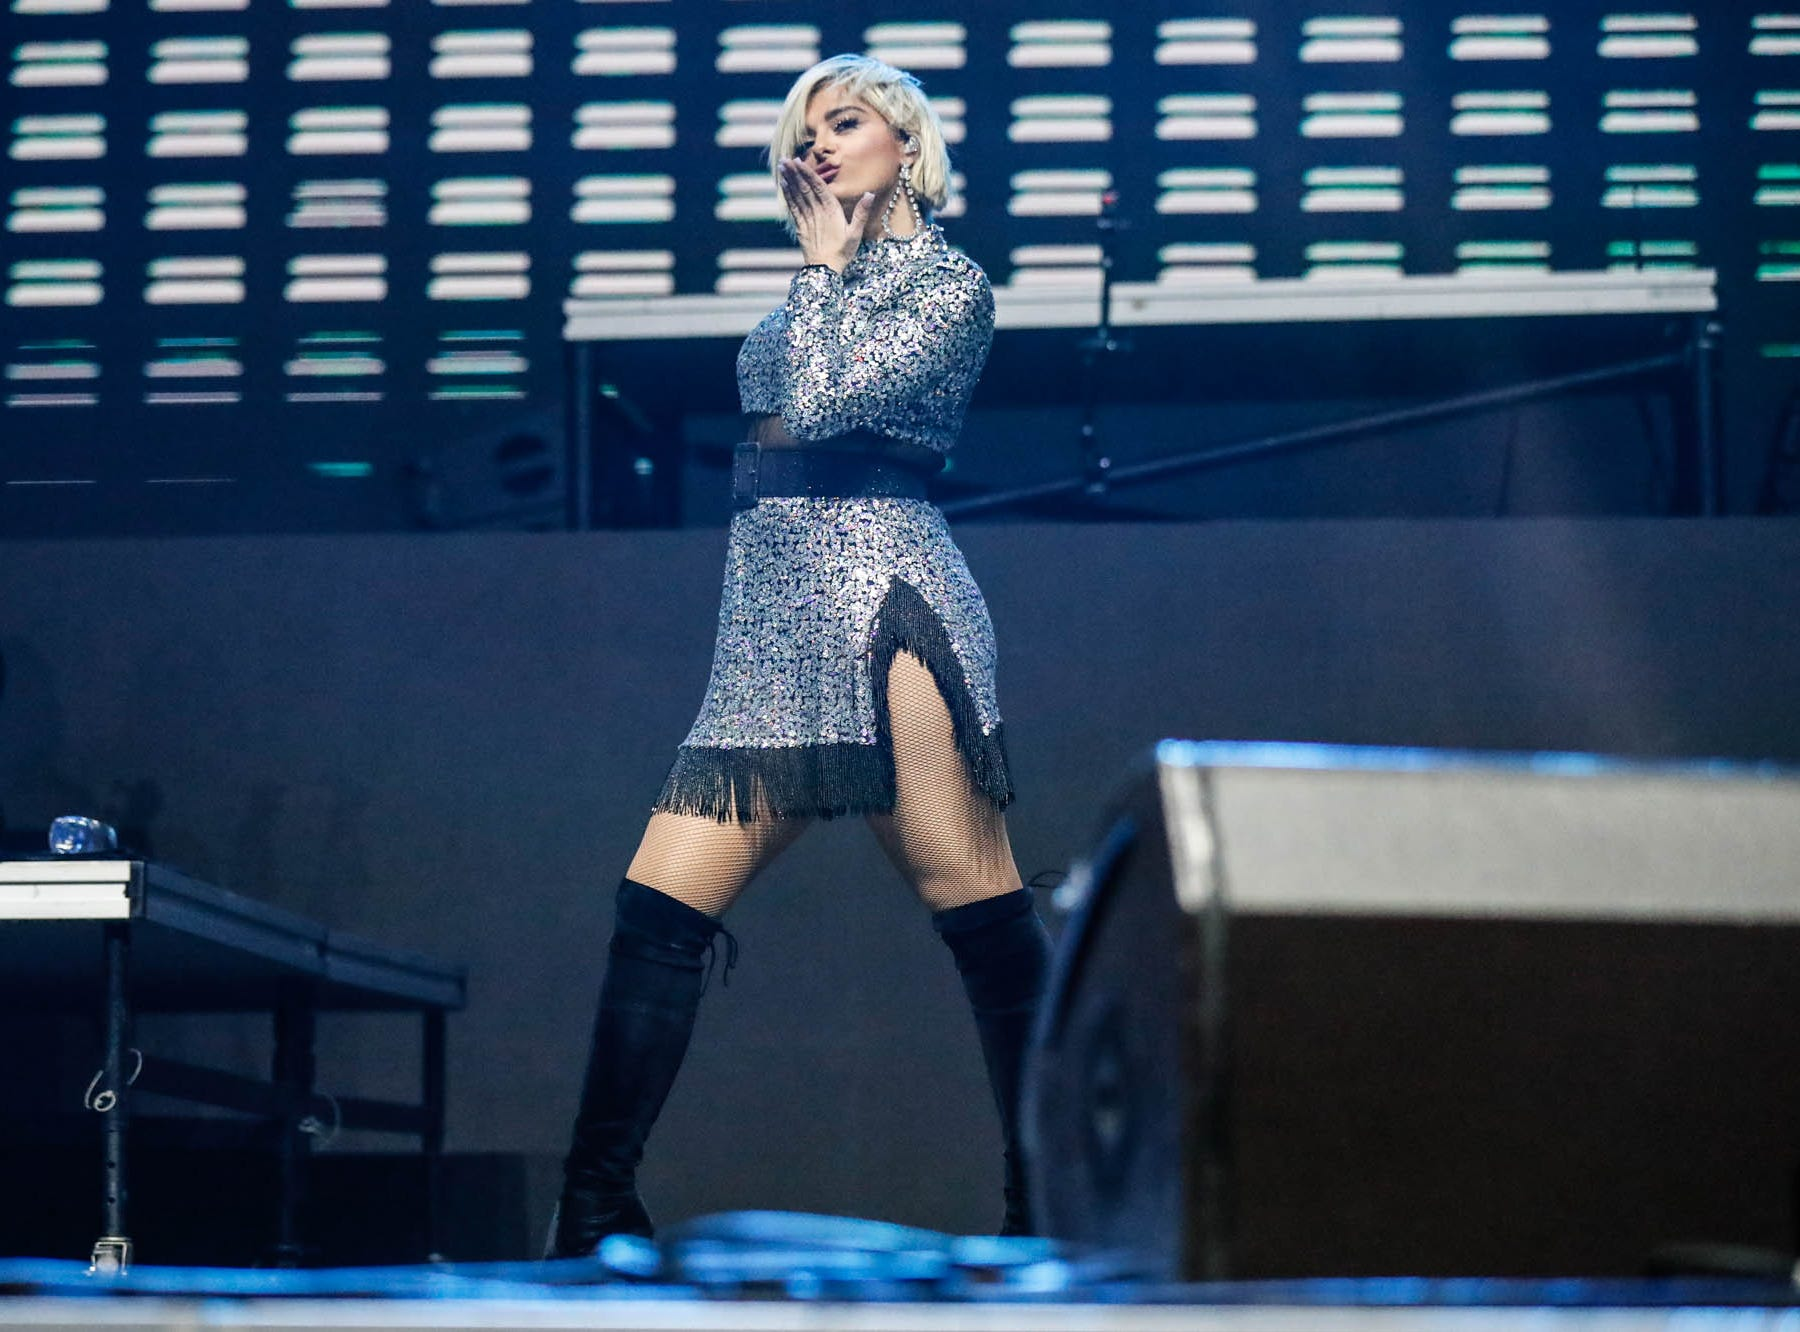 Bebe Rexha performs during the 2018 Jingle Jam concert at Bankers Life Fieldhouse in Indianapolis on Tuesday, Dec. 12, 2018.